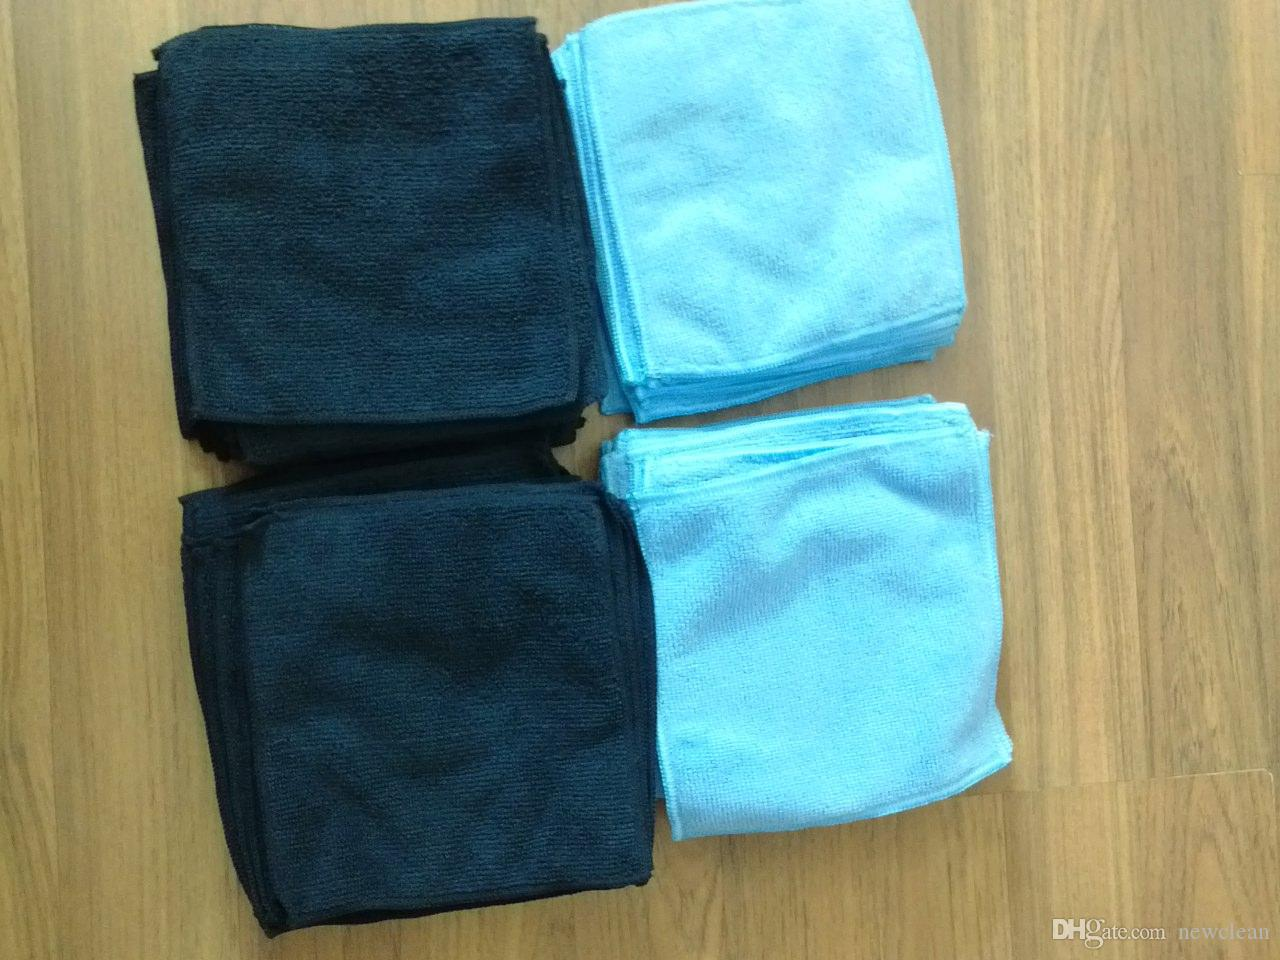 2018 Wholesale 15.2x15.2cm Microfiber Cleaning Wiping Rags Glass ...